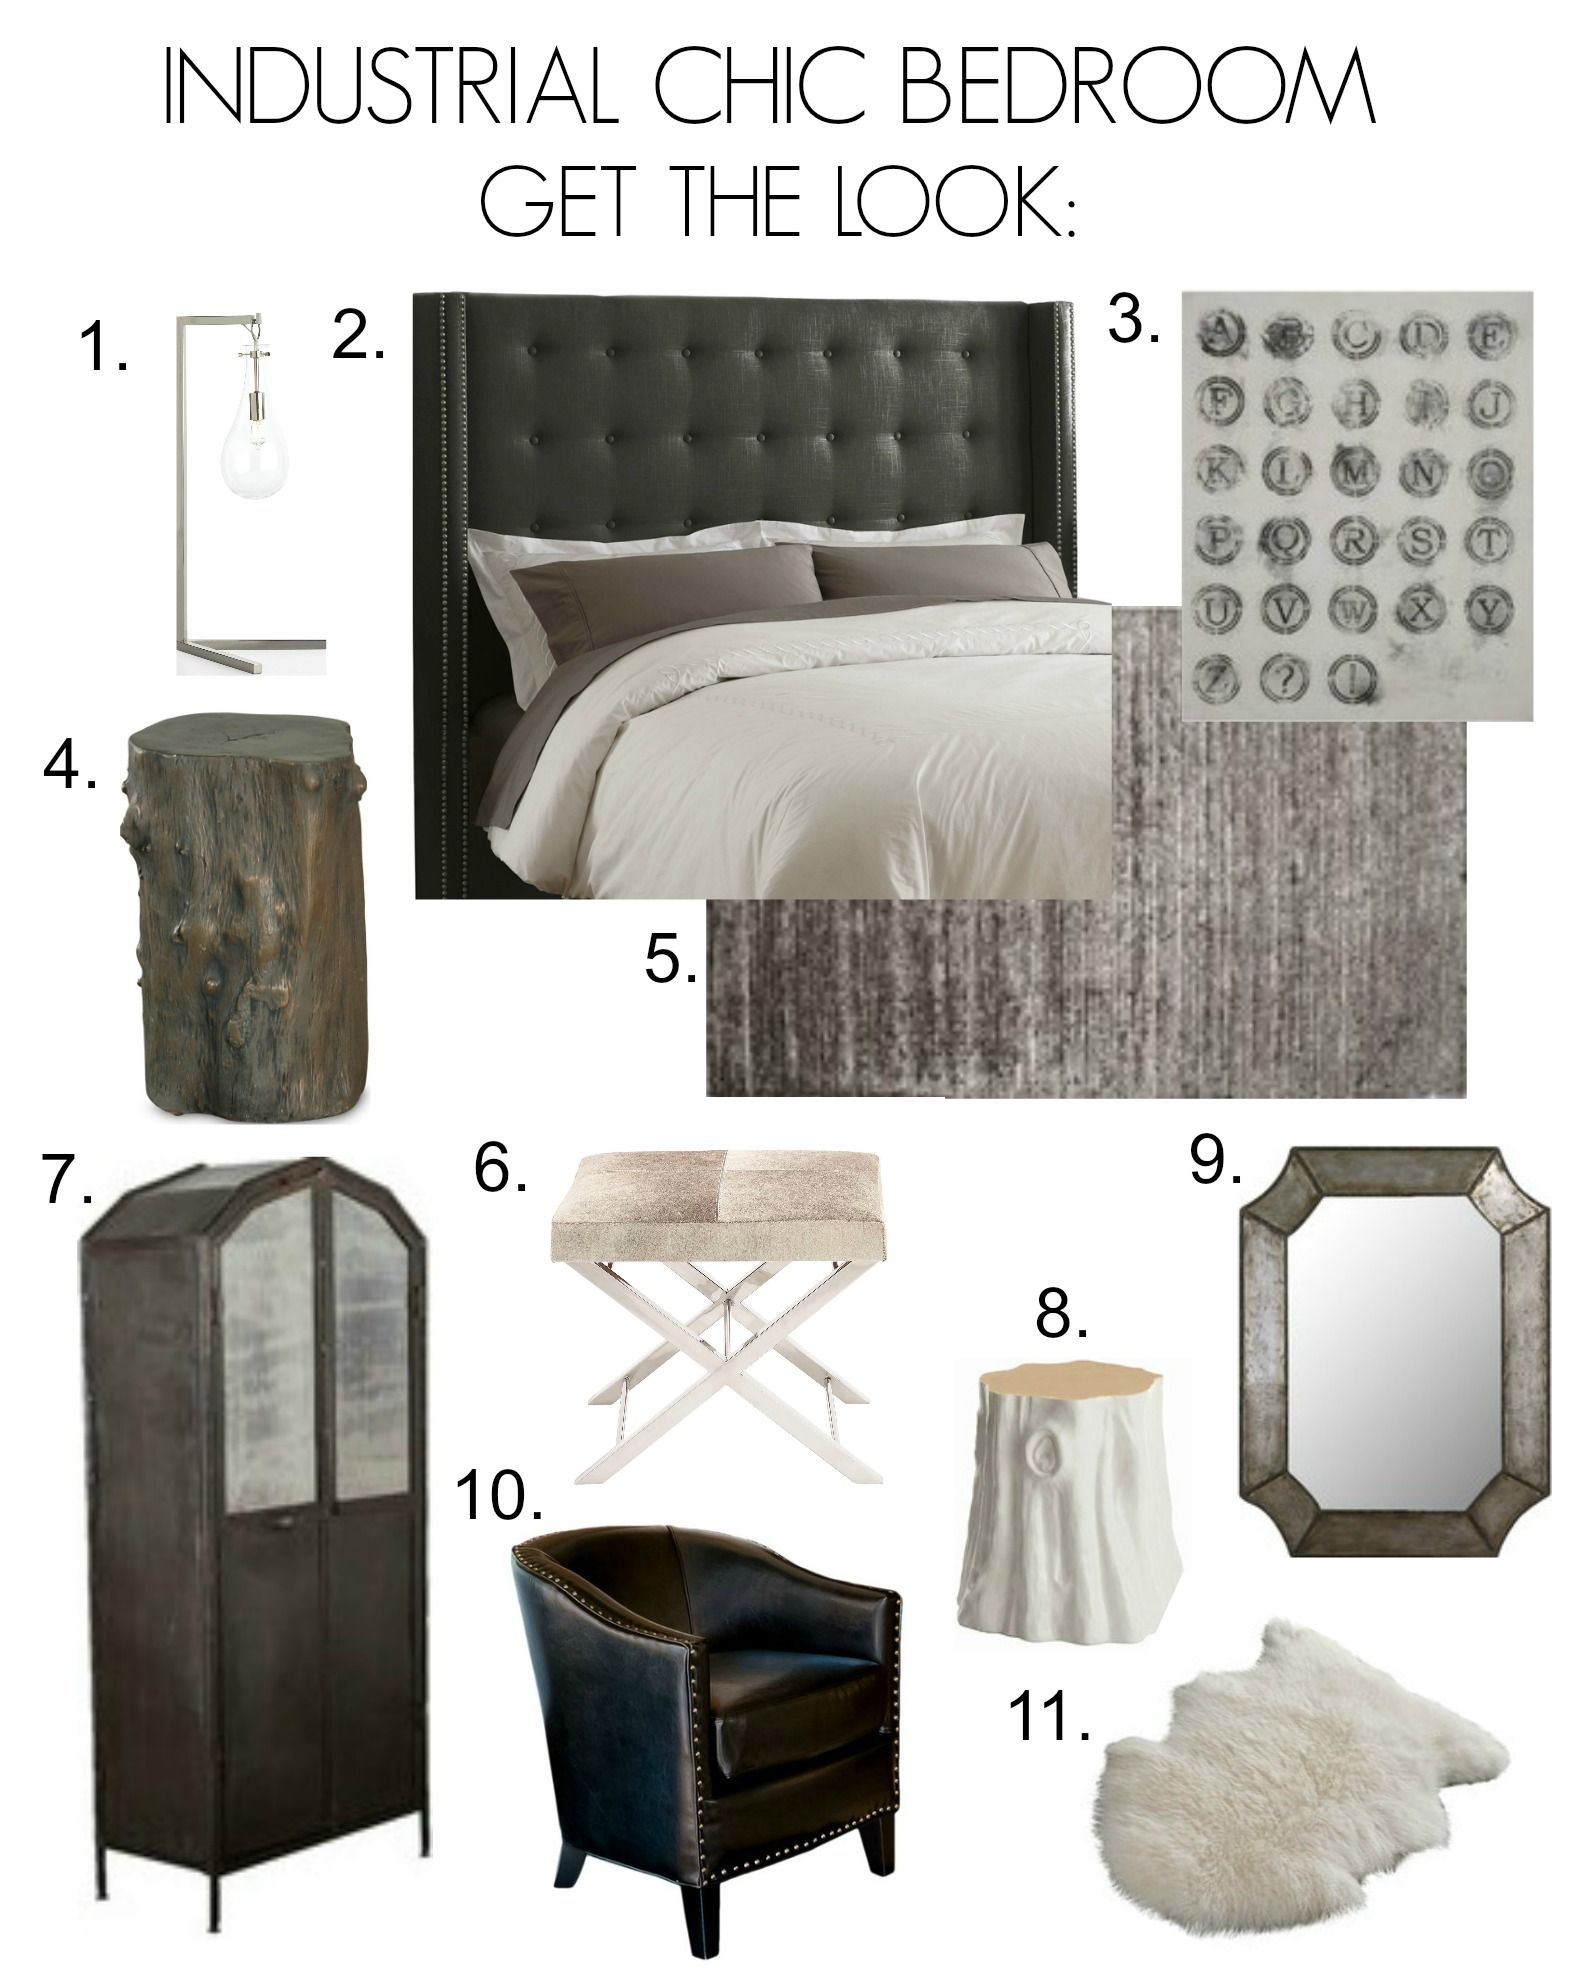 Beau Industrial Chic Bedroom Inspiration Board